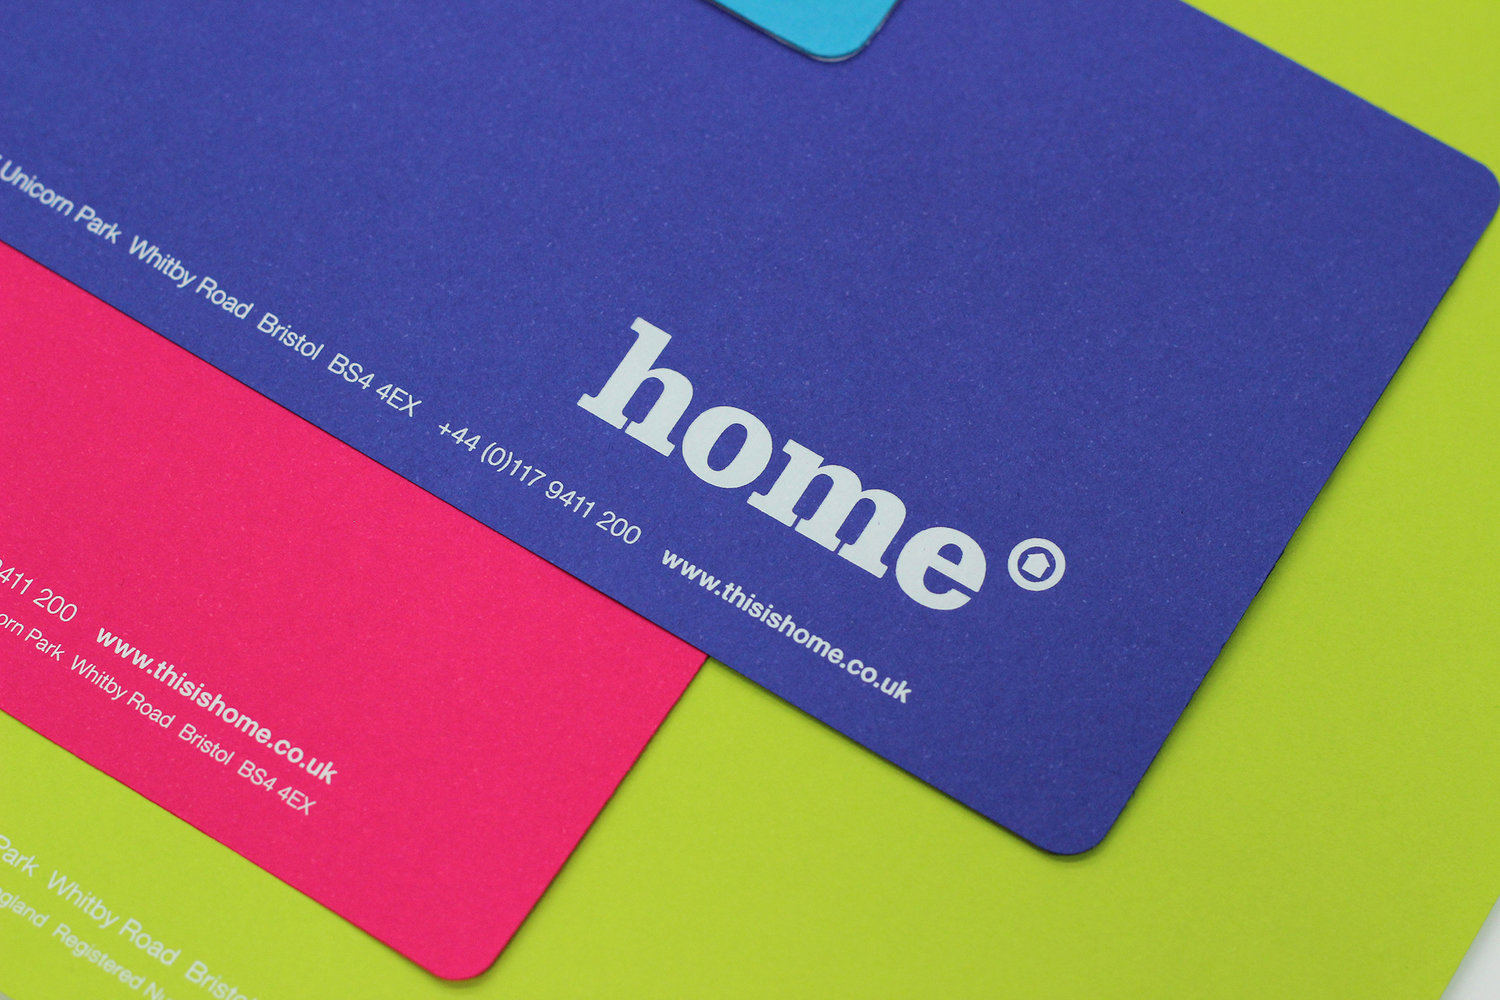 Home+stationery_shoot_Alan+Clarke-Symonds_02.jpg